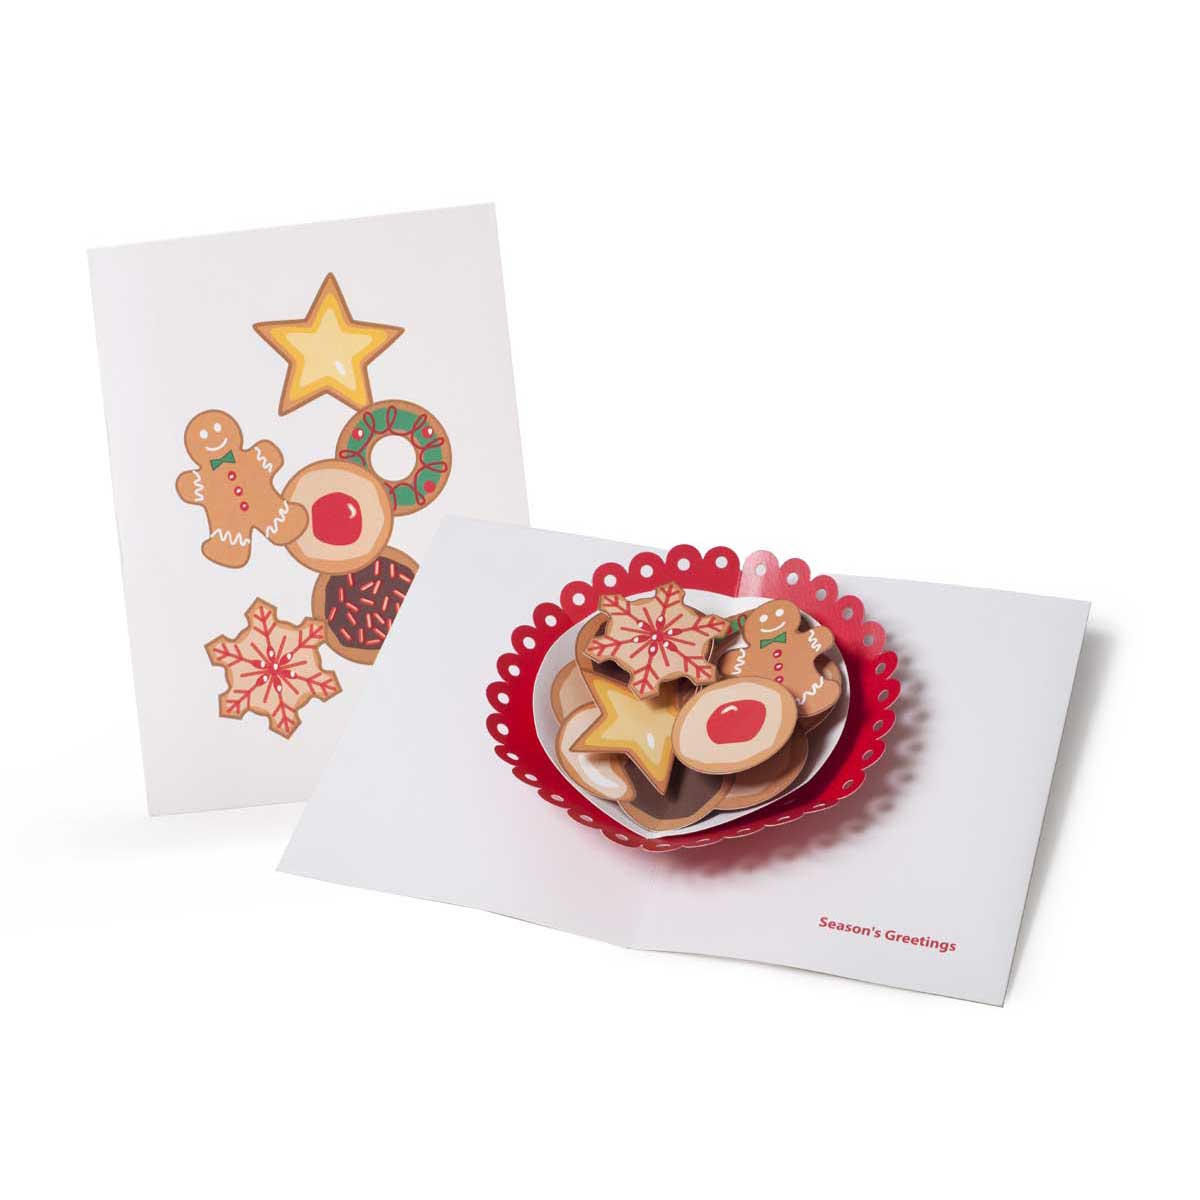 MoMA_Holiday_Cards-ChristmasCookies_Maike-Biederstaedt_1200x1200.jpg